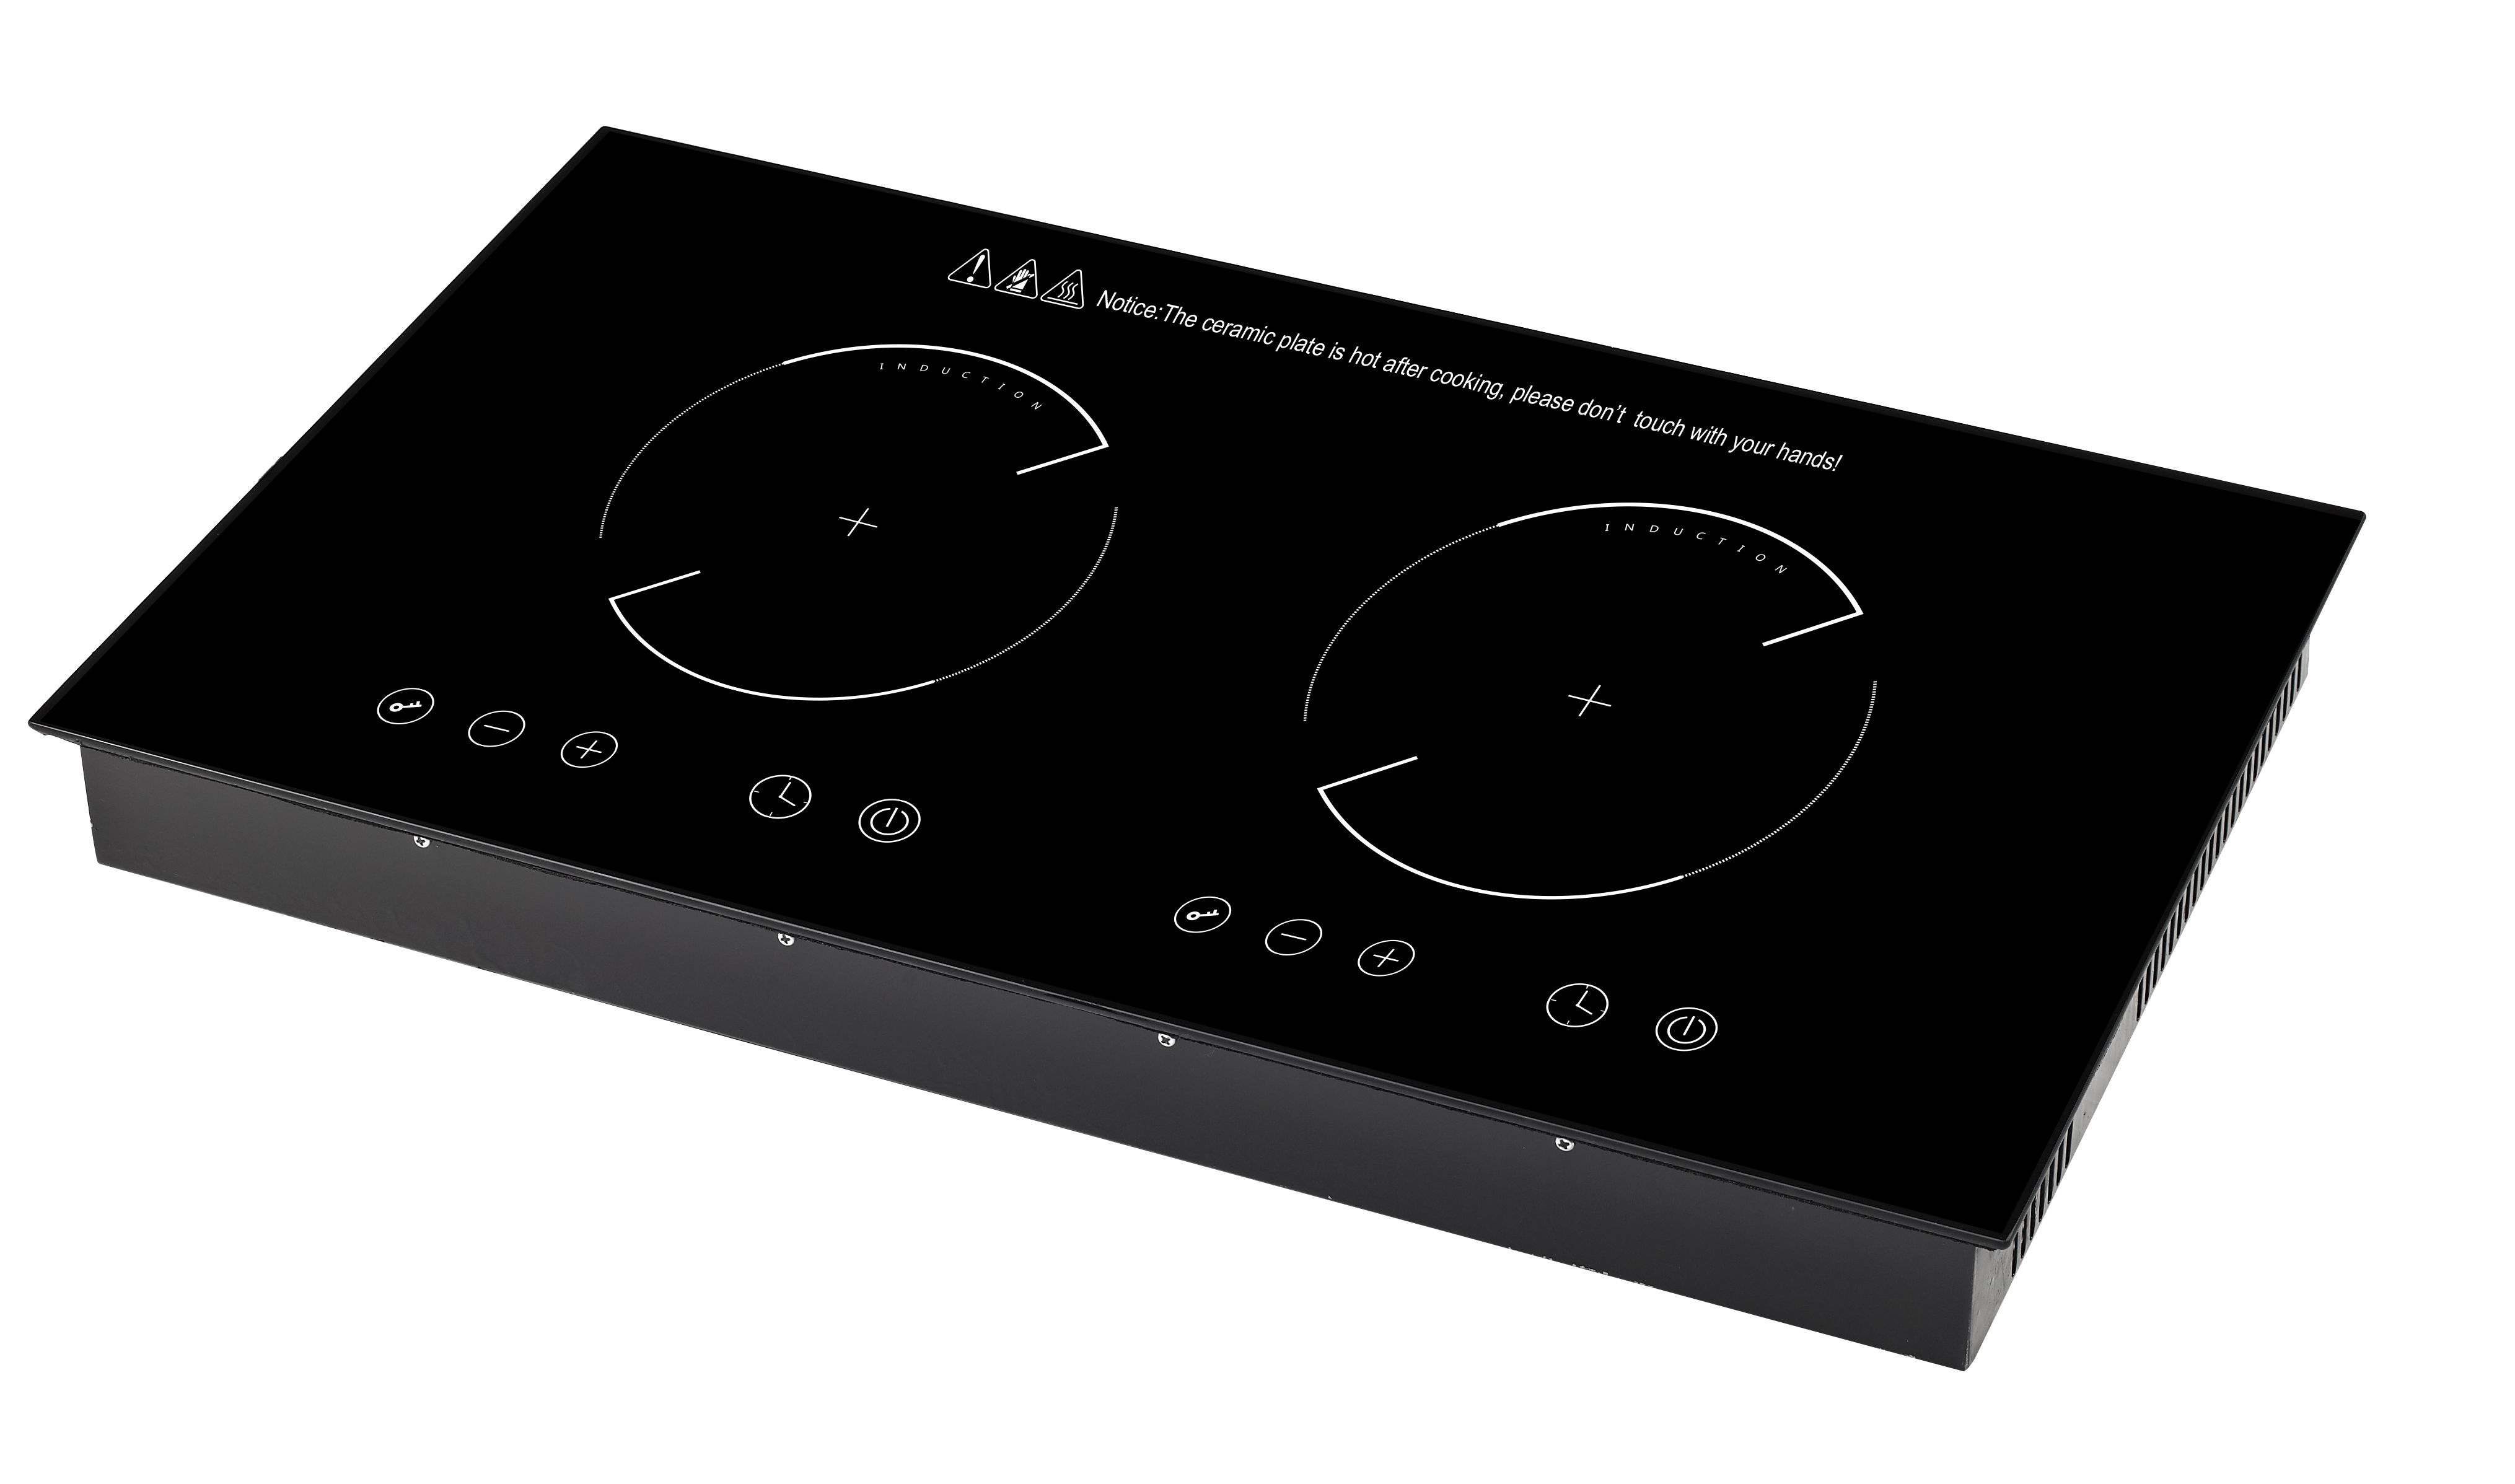 Electric Hot Plate Built-in Electric Hob 1 2 3 4 Burners Induction Cooktop